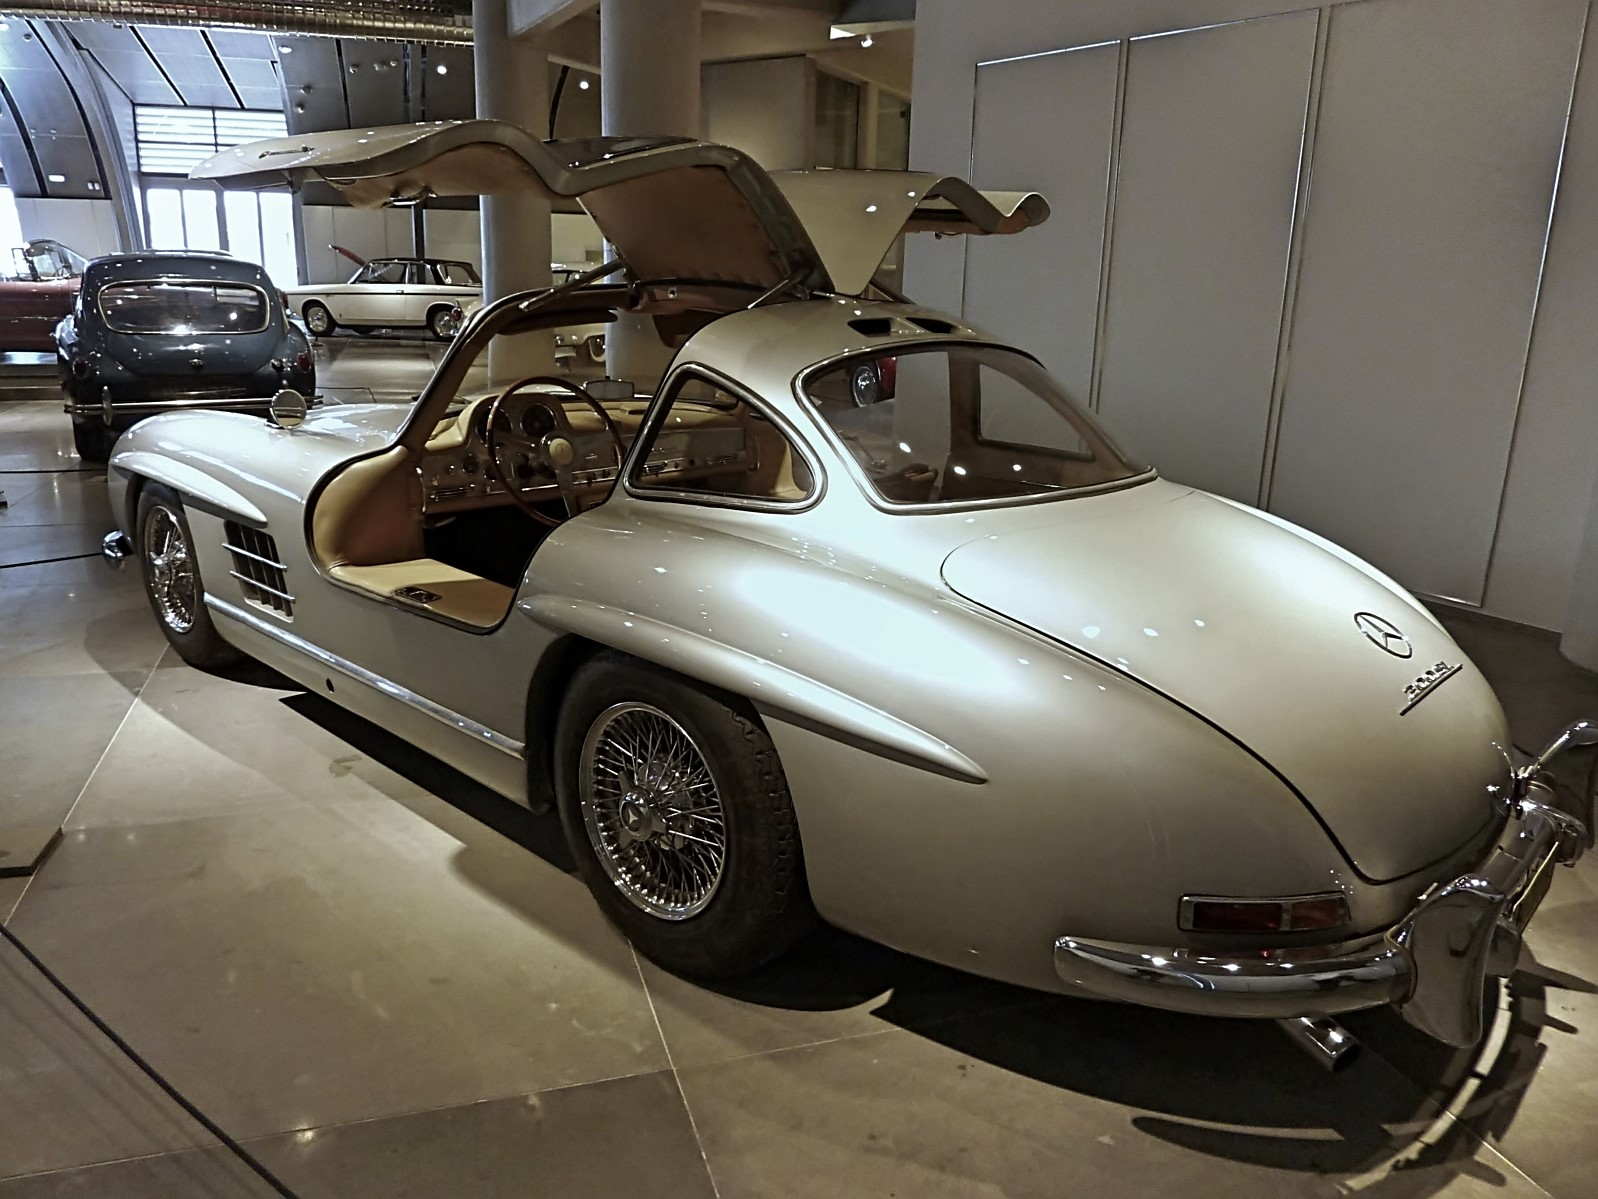 1954 Mercedes-Benz 300SL Gullwing ex.Paul Newman (8)